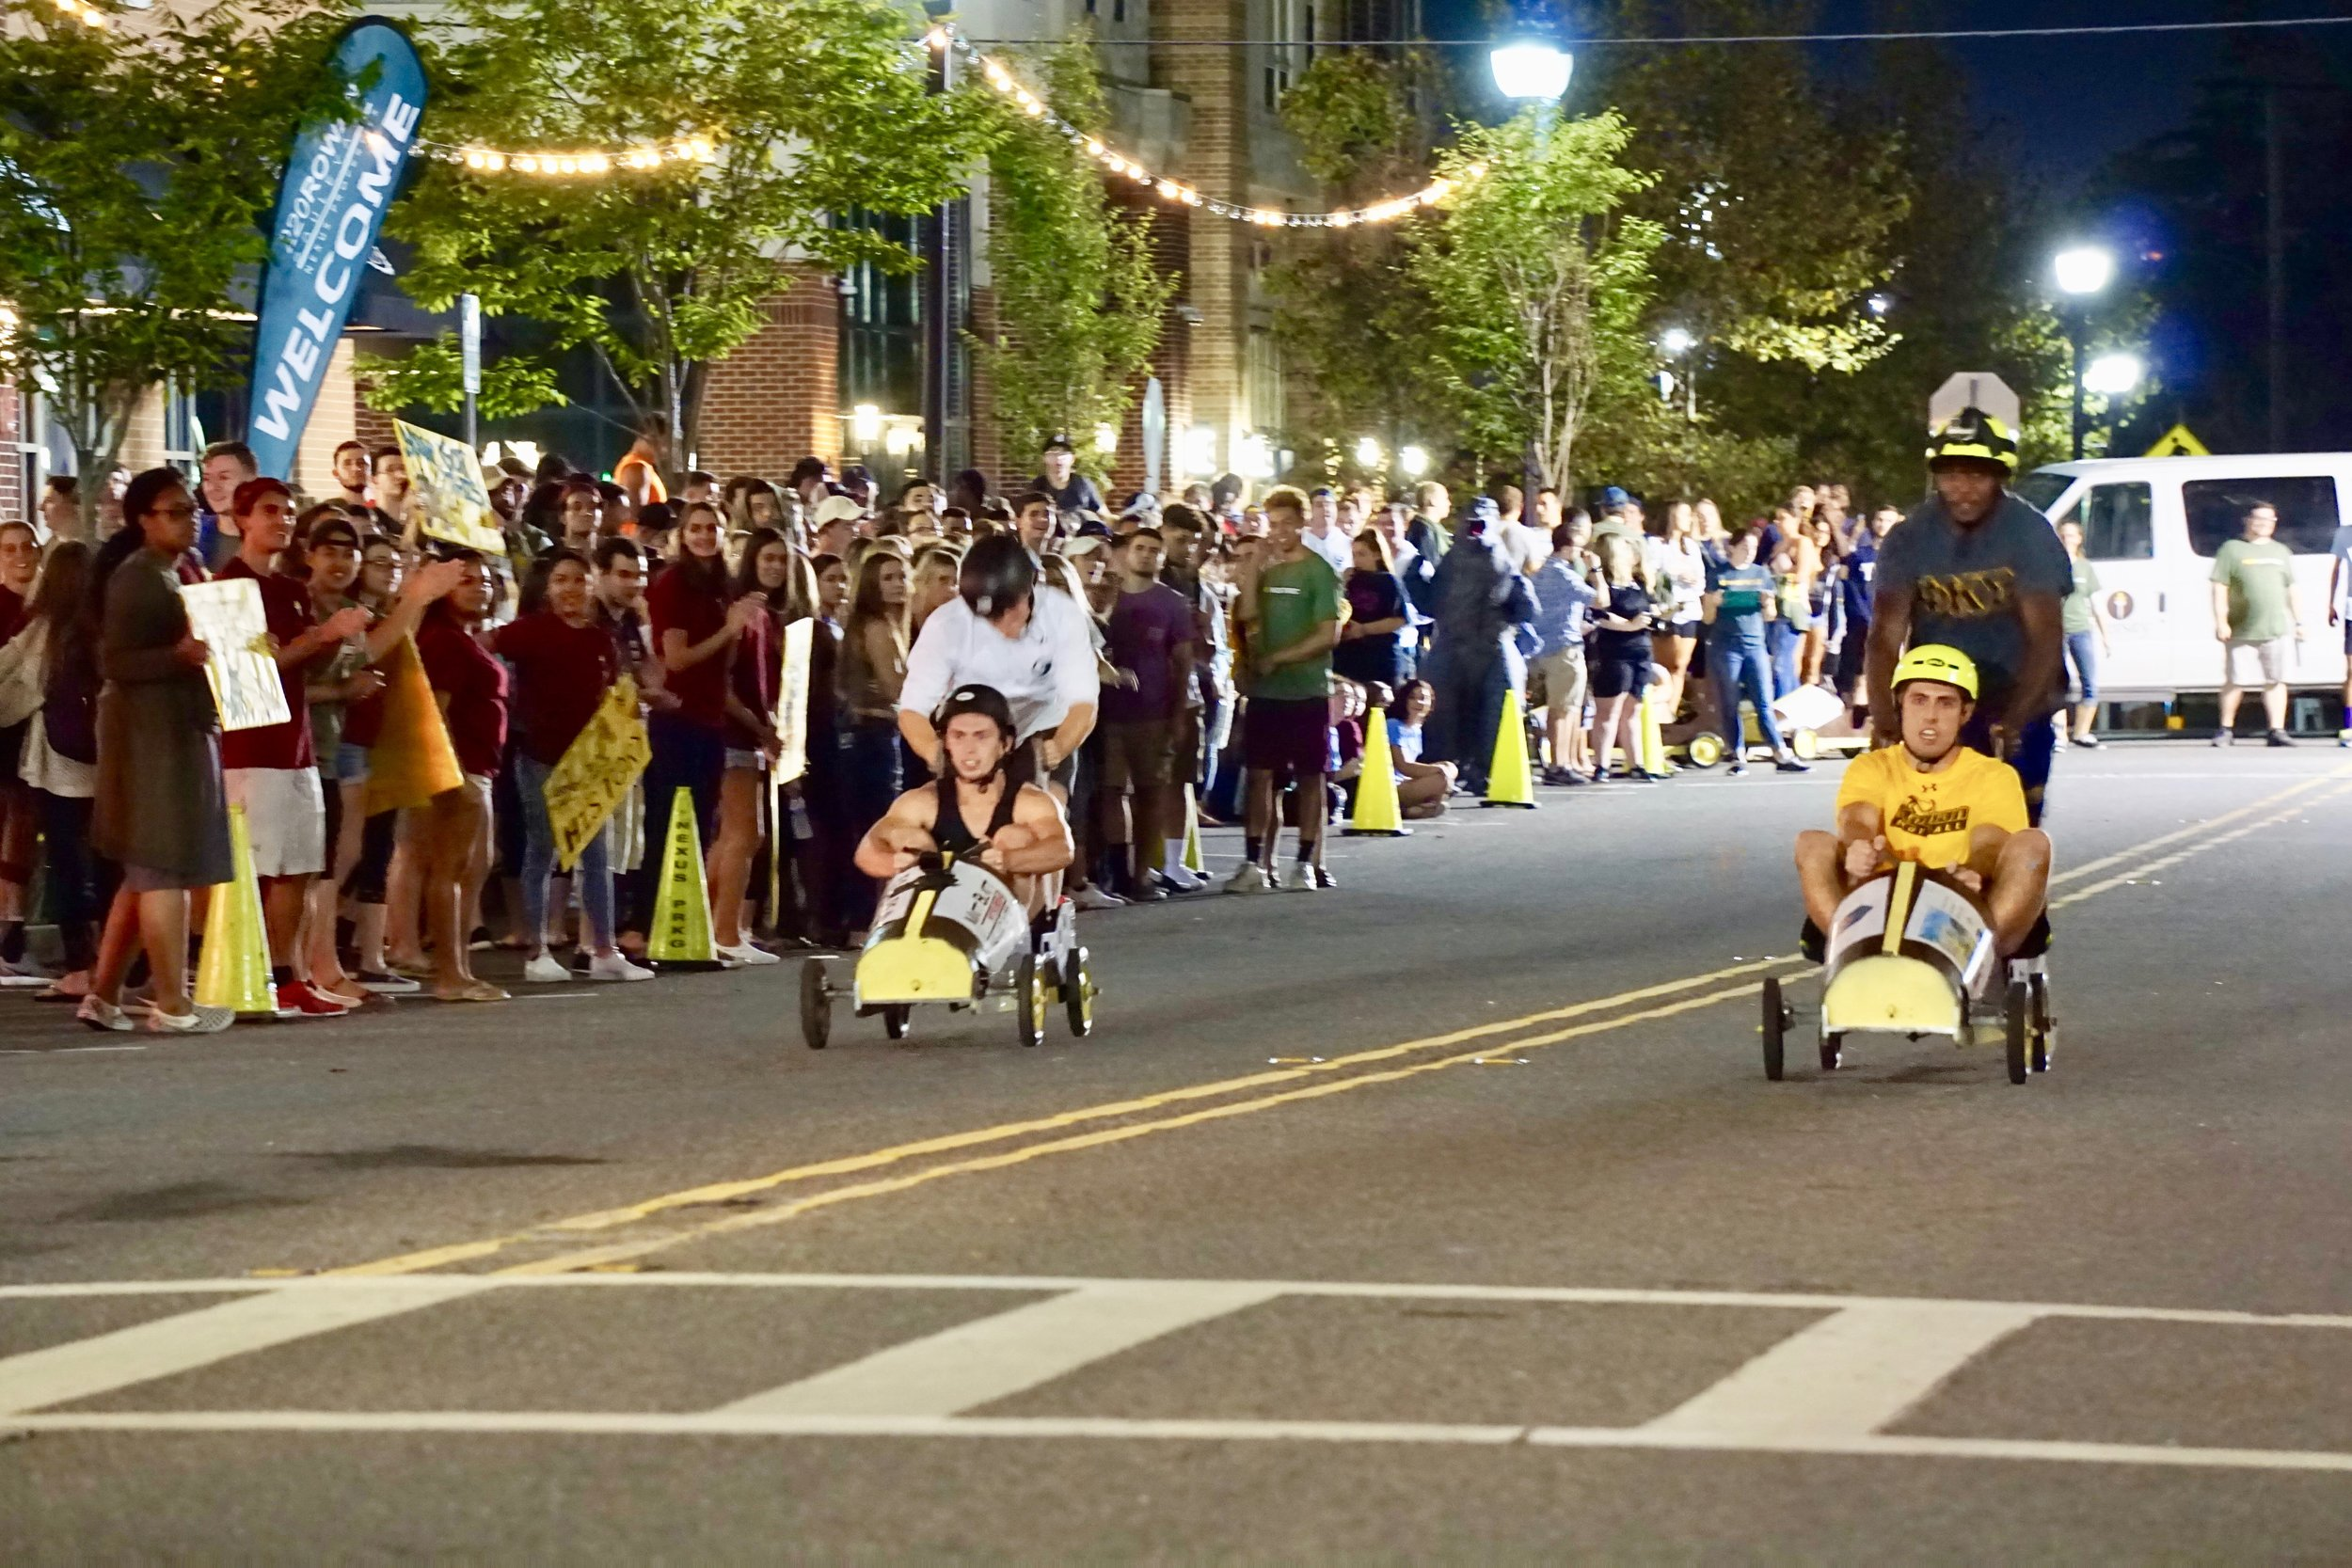 glassboro rowan university push cart races